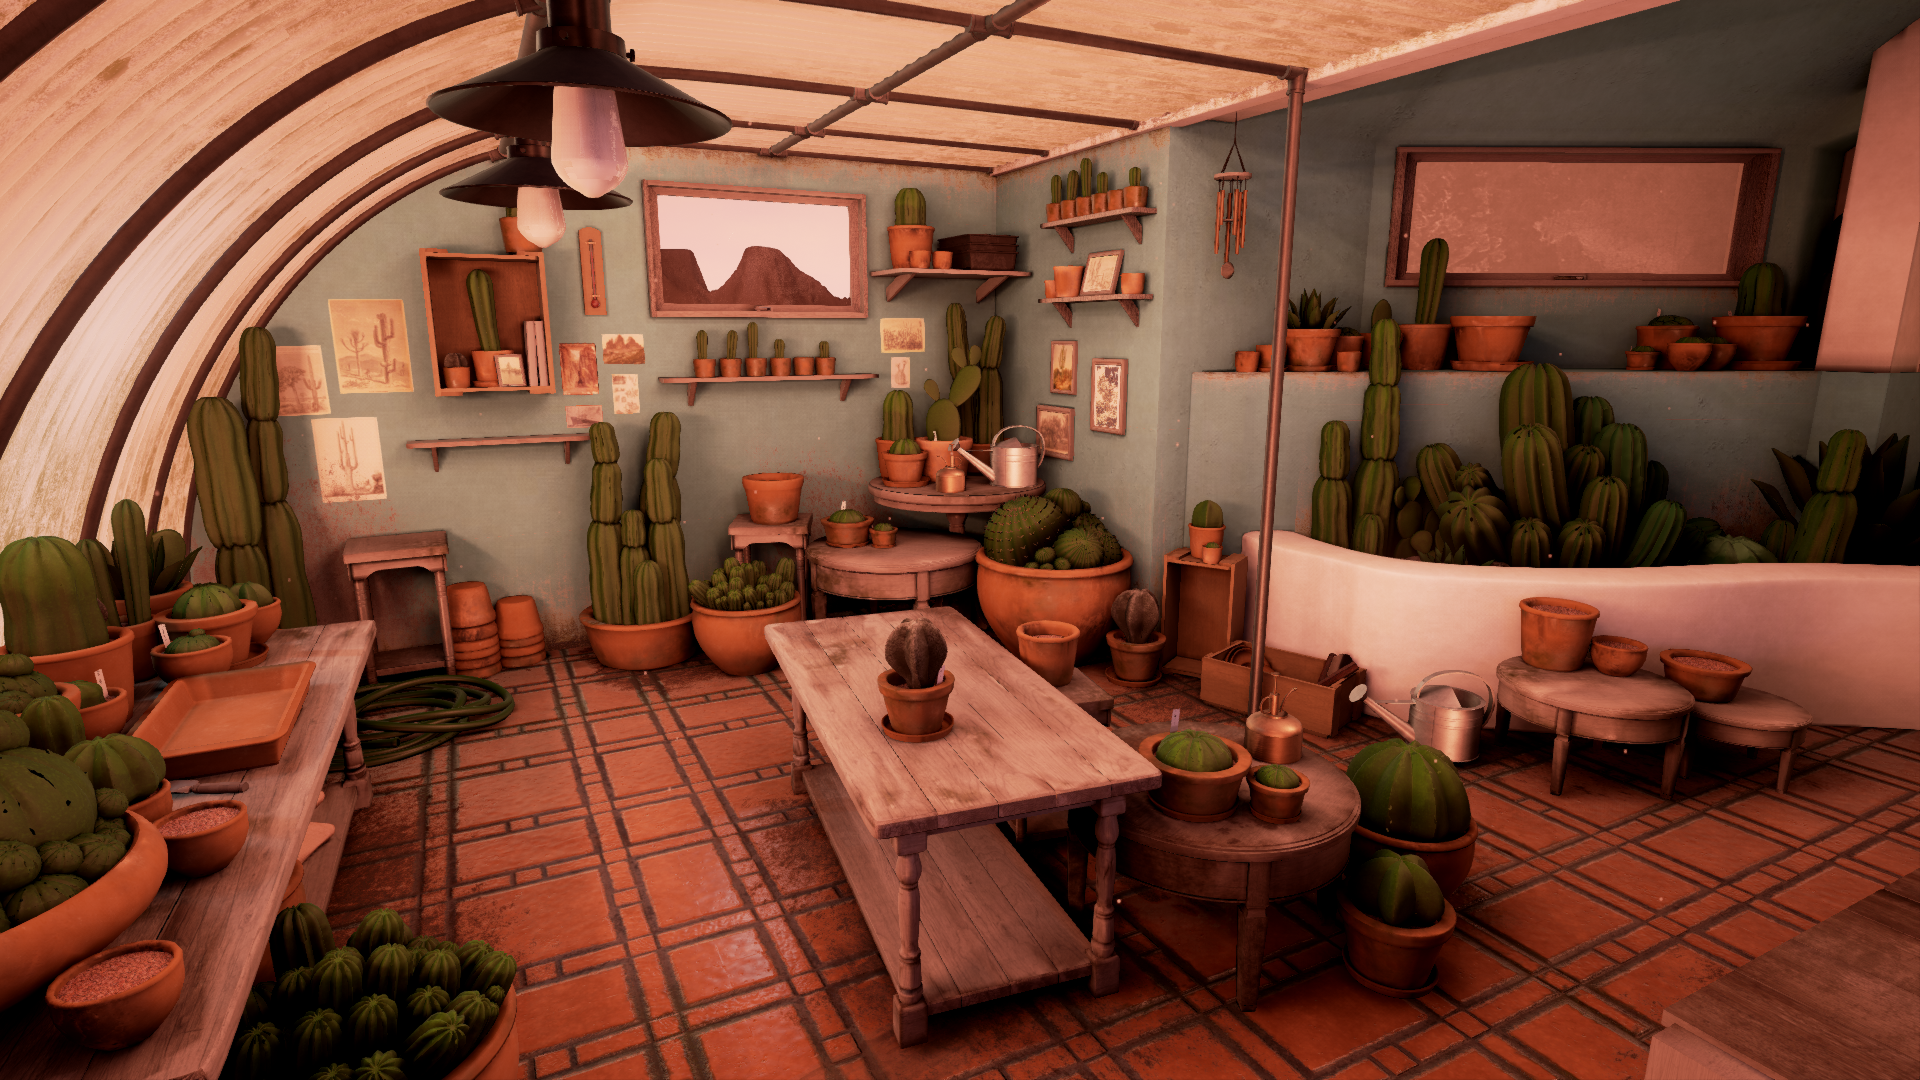 Cactus Greenhouse Thesis WIP -Rendered in realtime in Unreal4 -2016/2017 - Responsible for everything